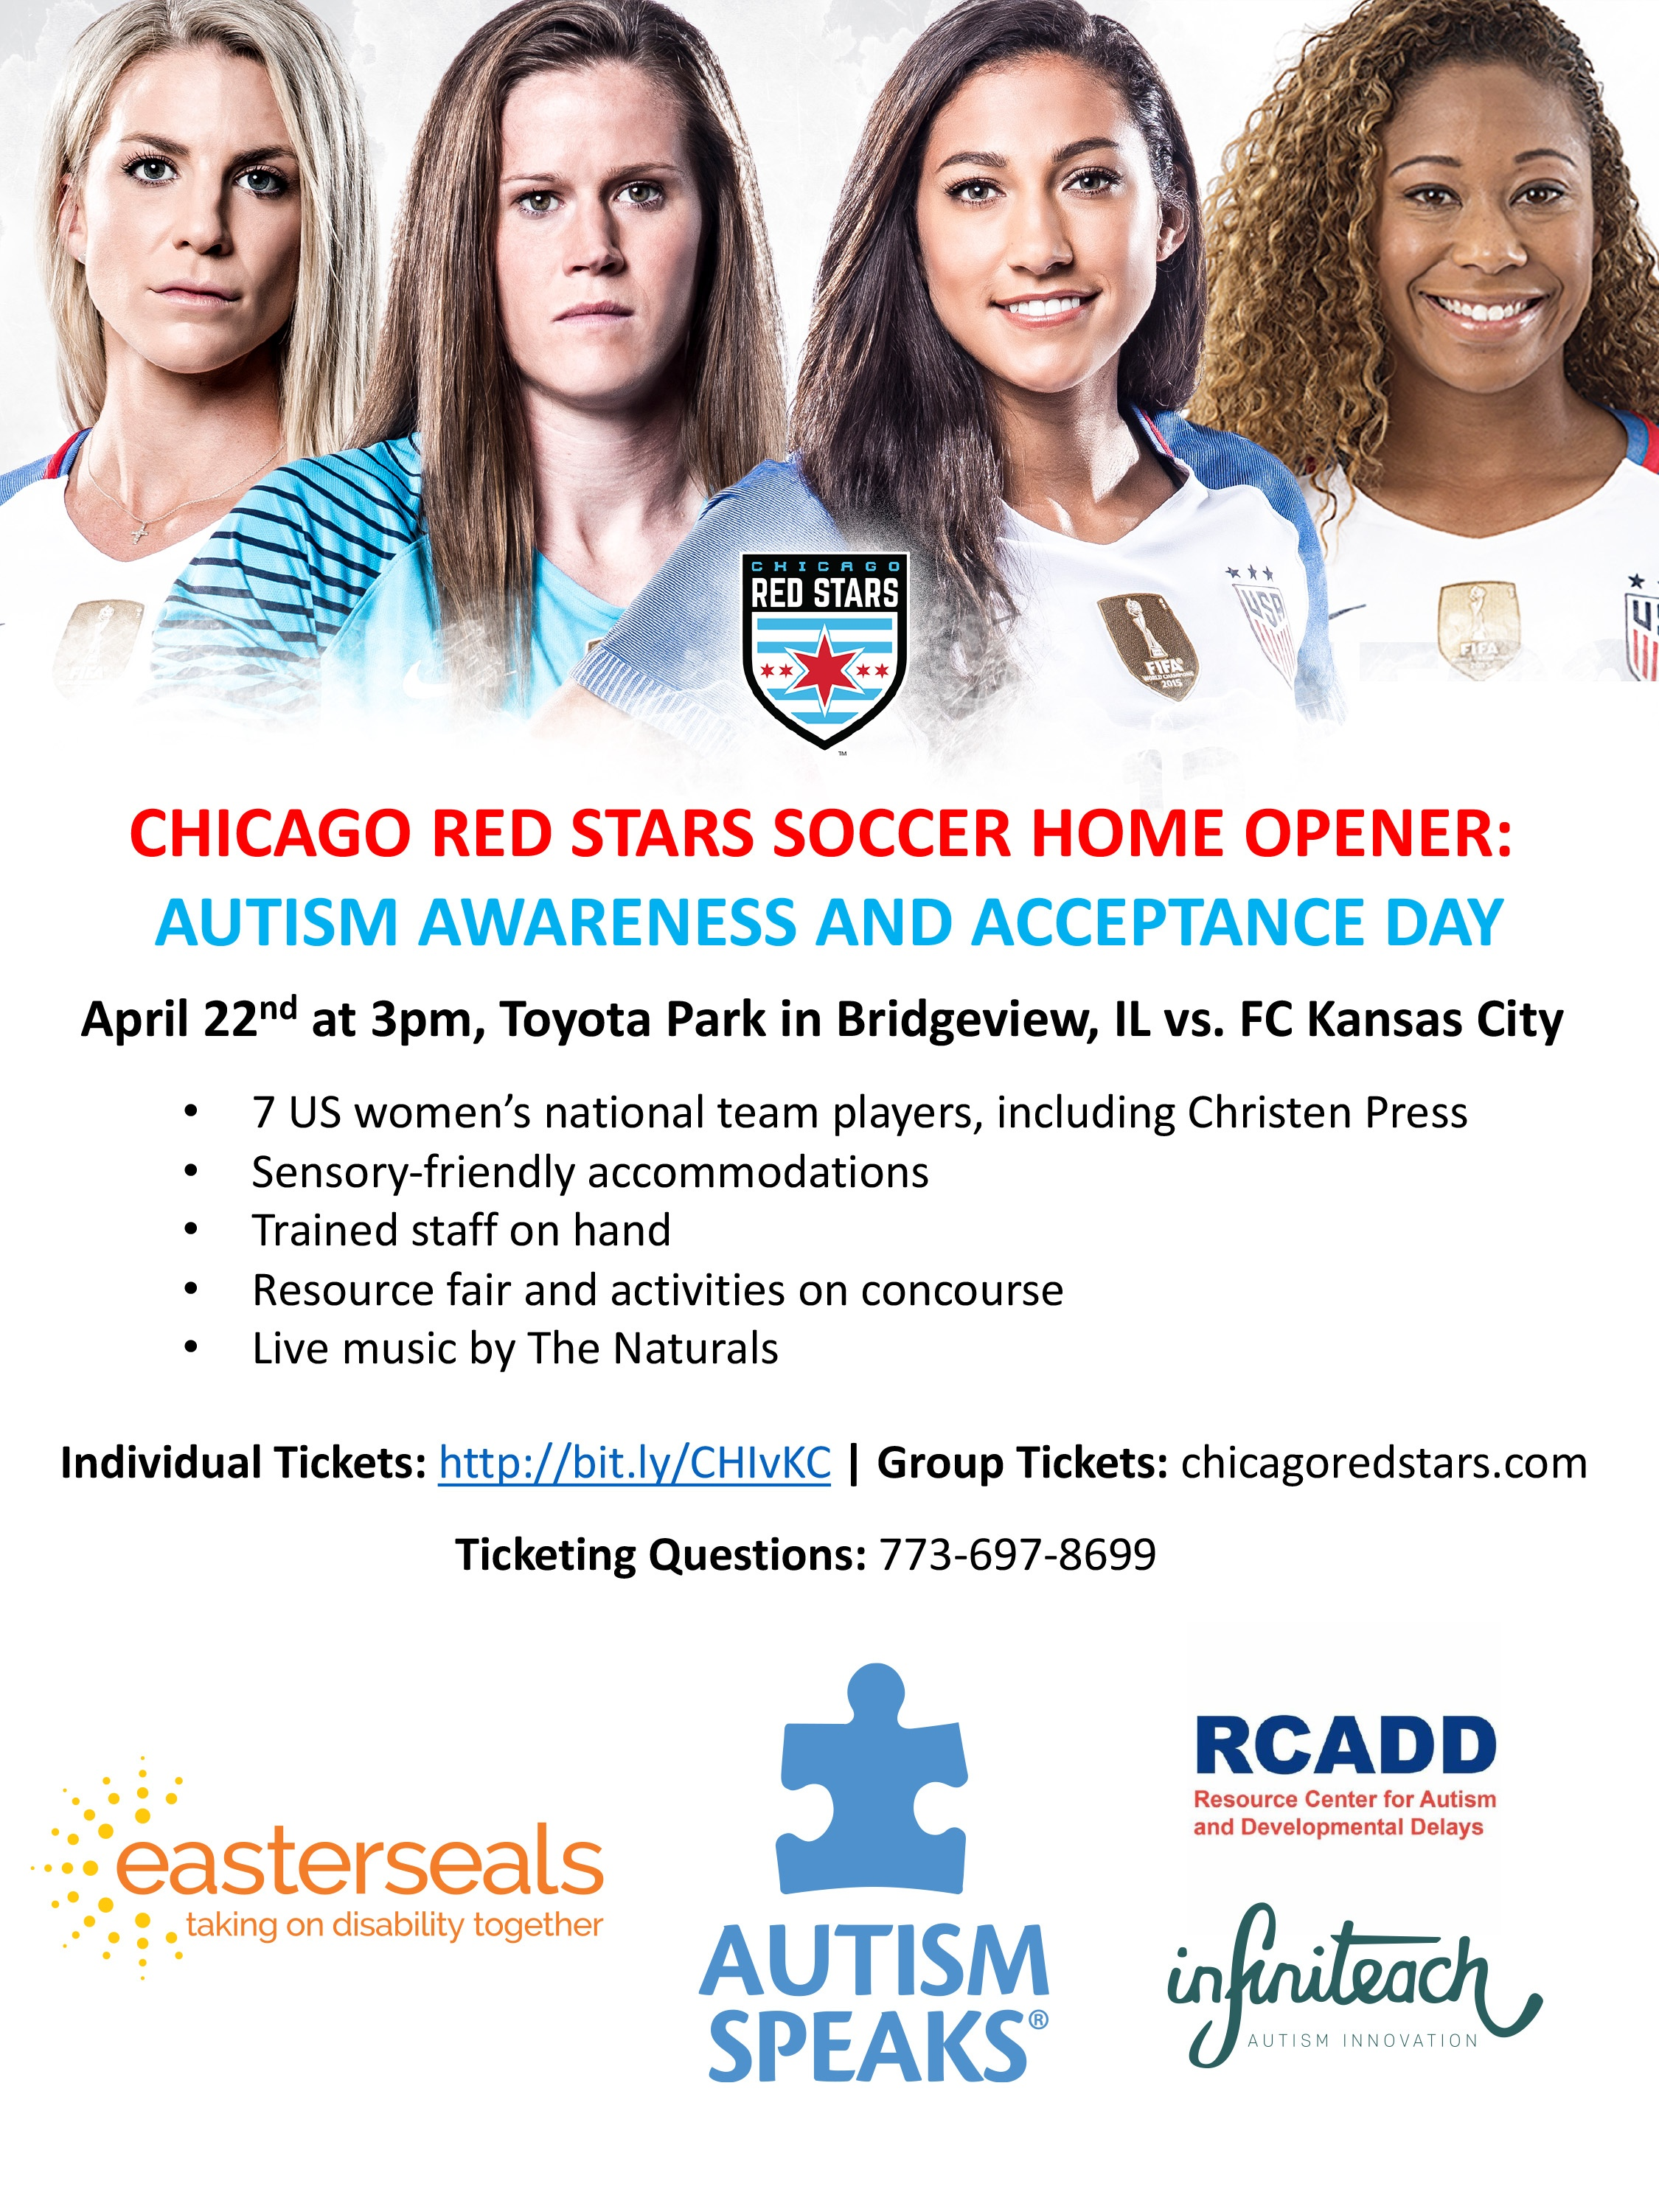 nonspecific flyer chicago red stars.jpg